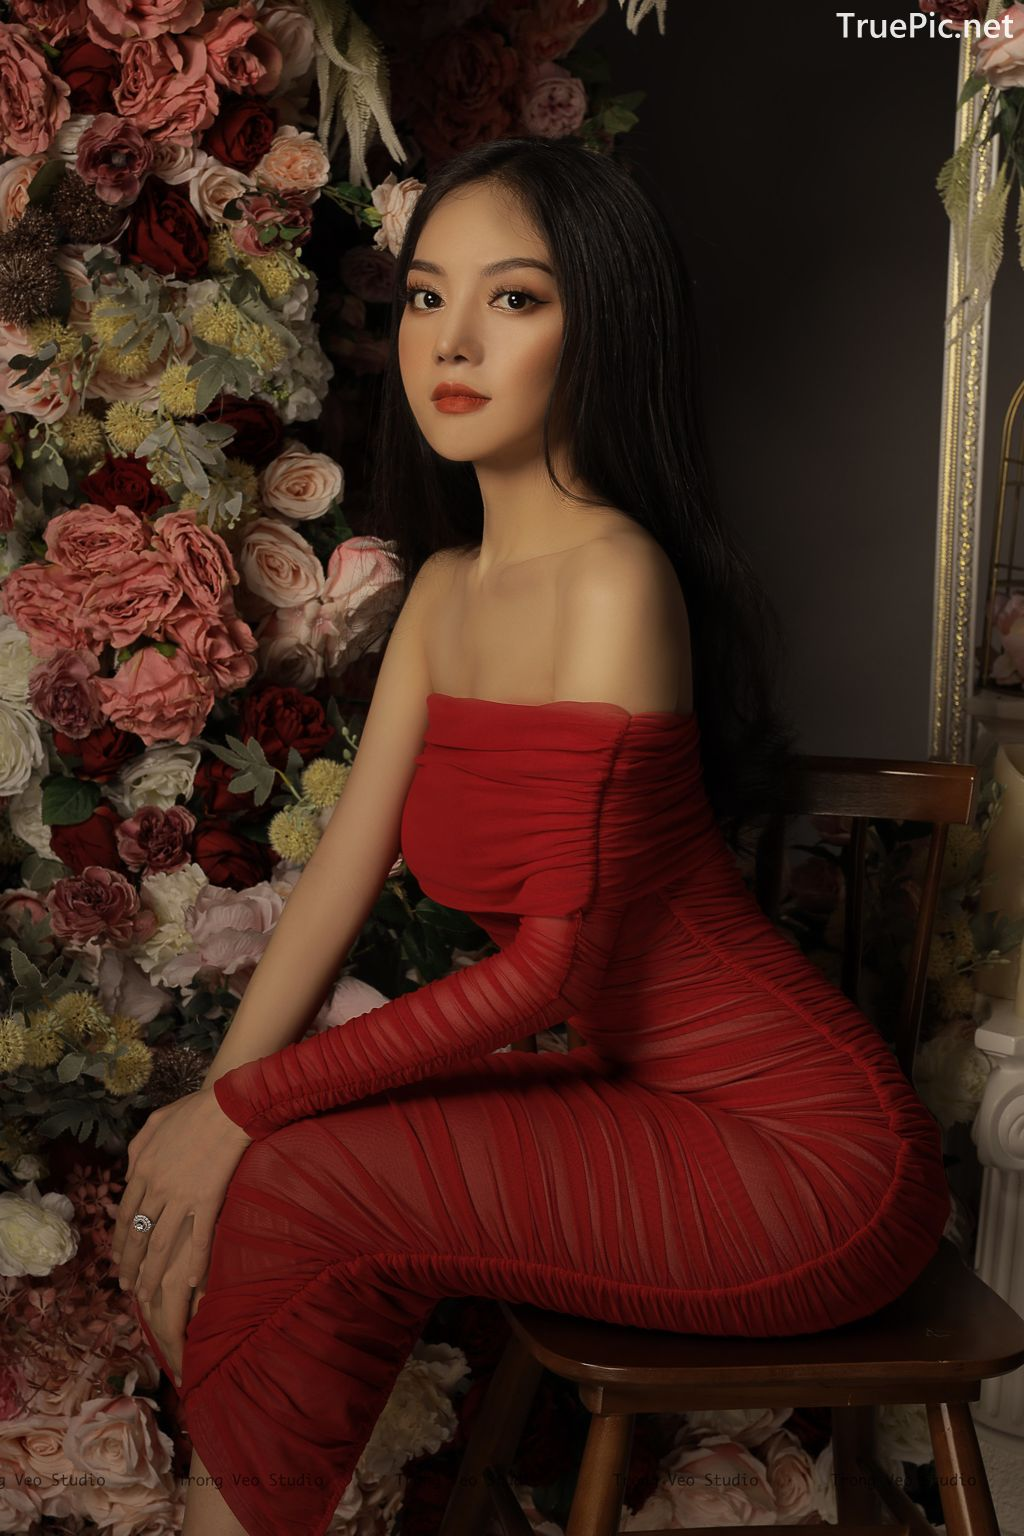 Image Vietnamese Model - Beautiful Girl and Flowers - TruePic.net - Picture-5